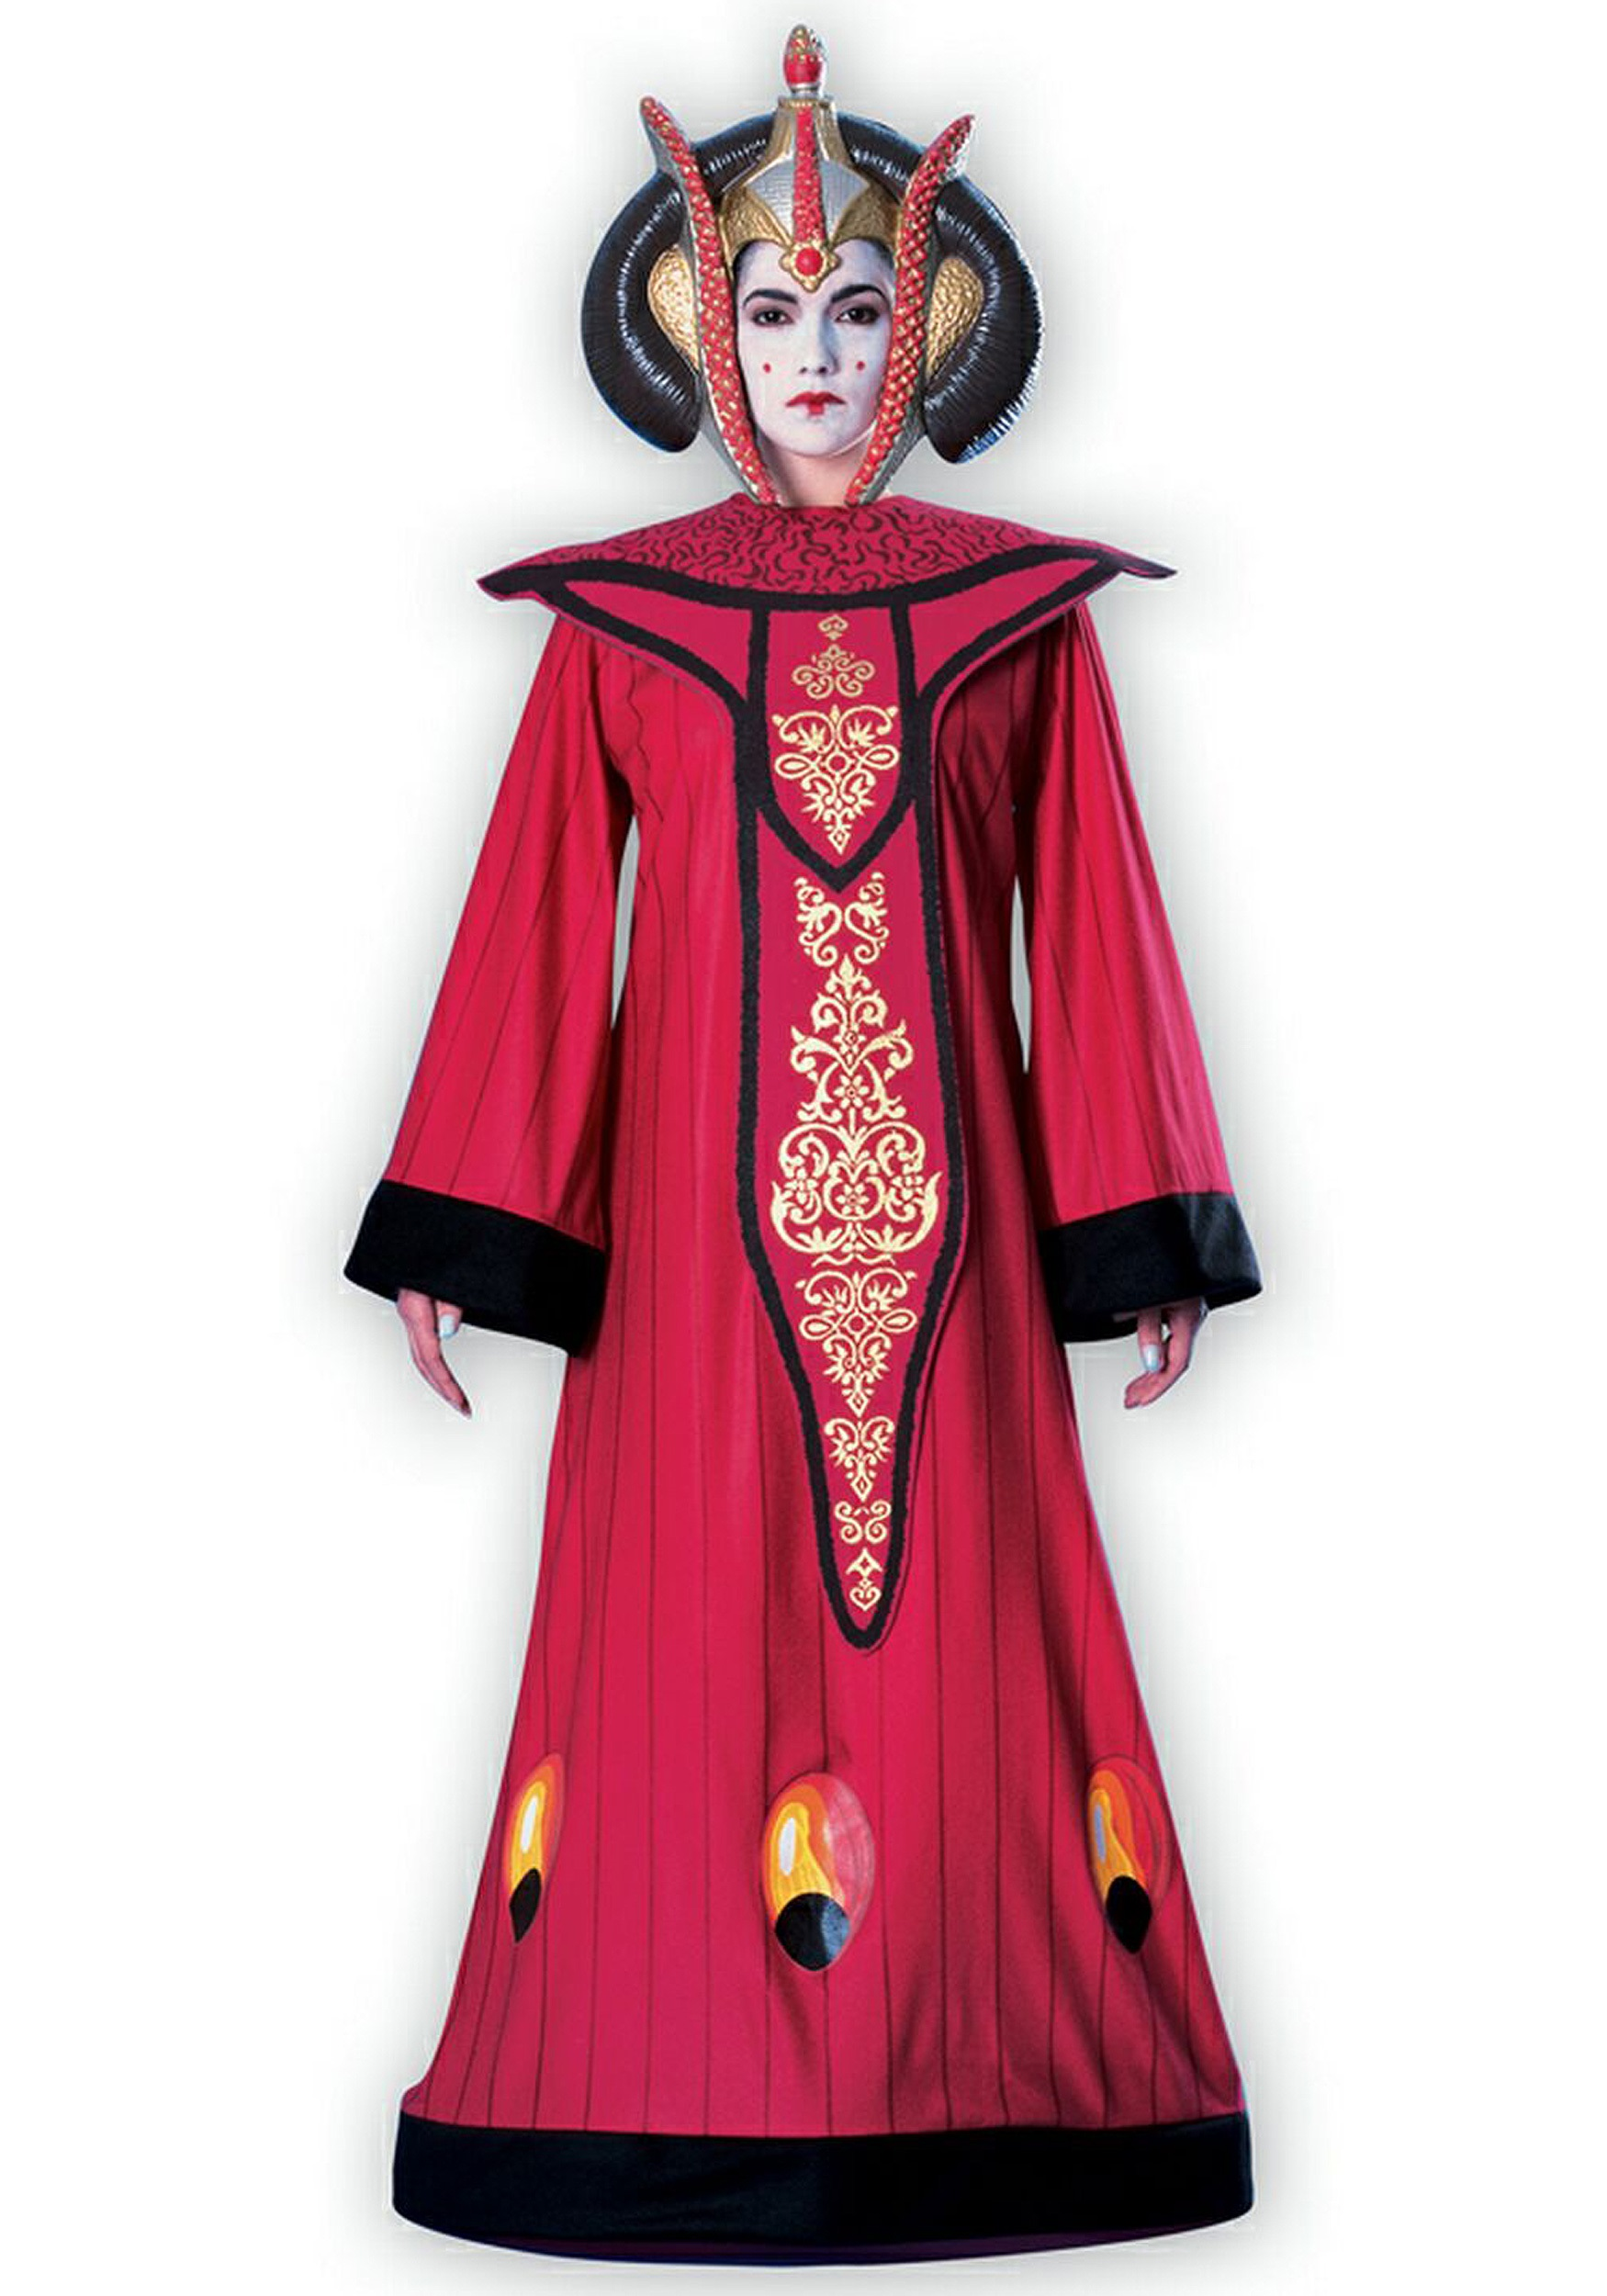 queen amidala costume for adults. Black Bedroom Furniture Sets. Home Design Ideas